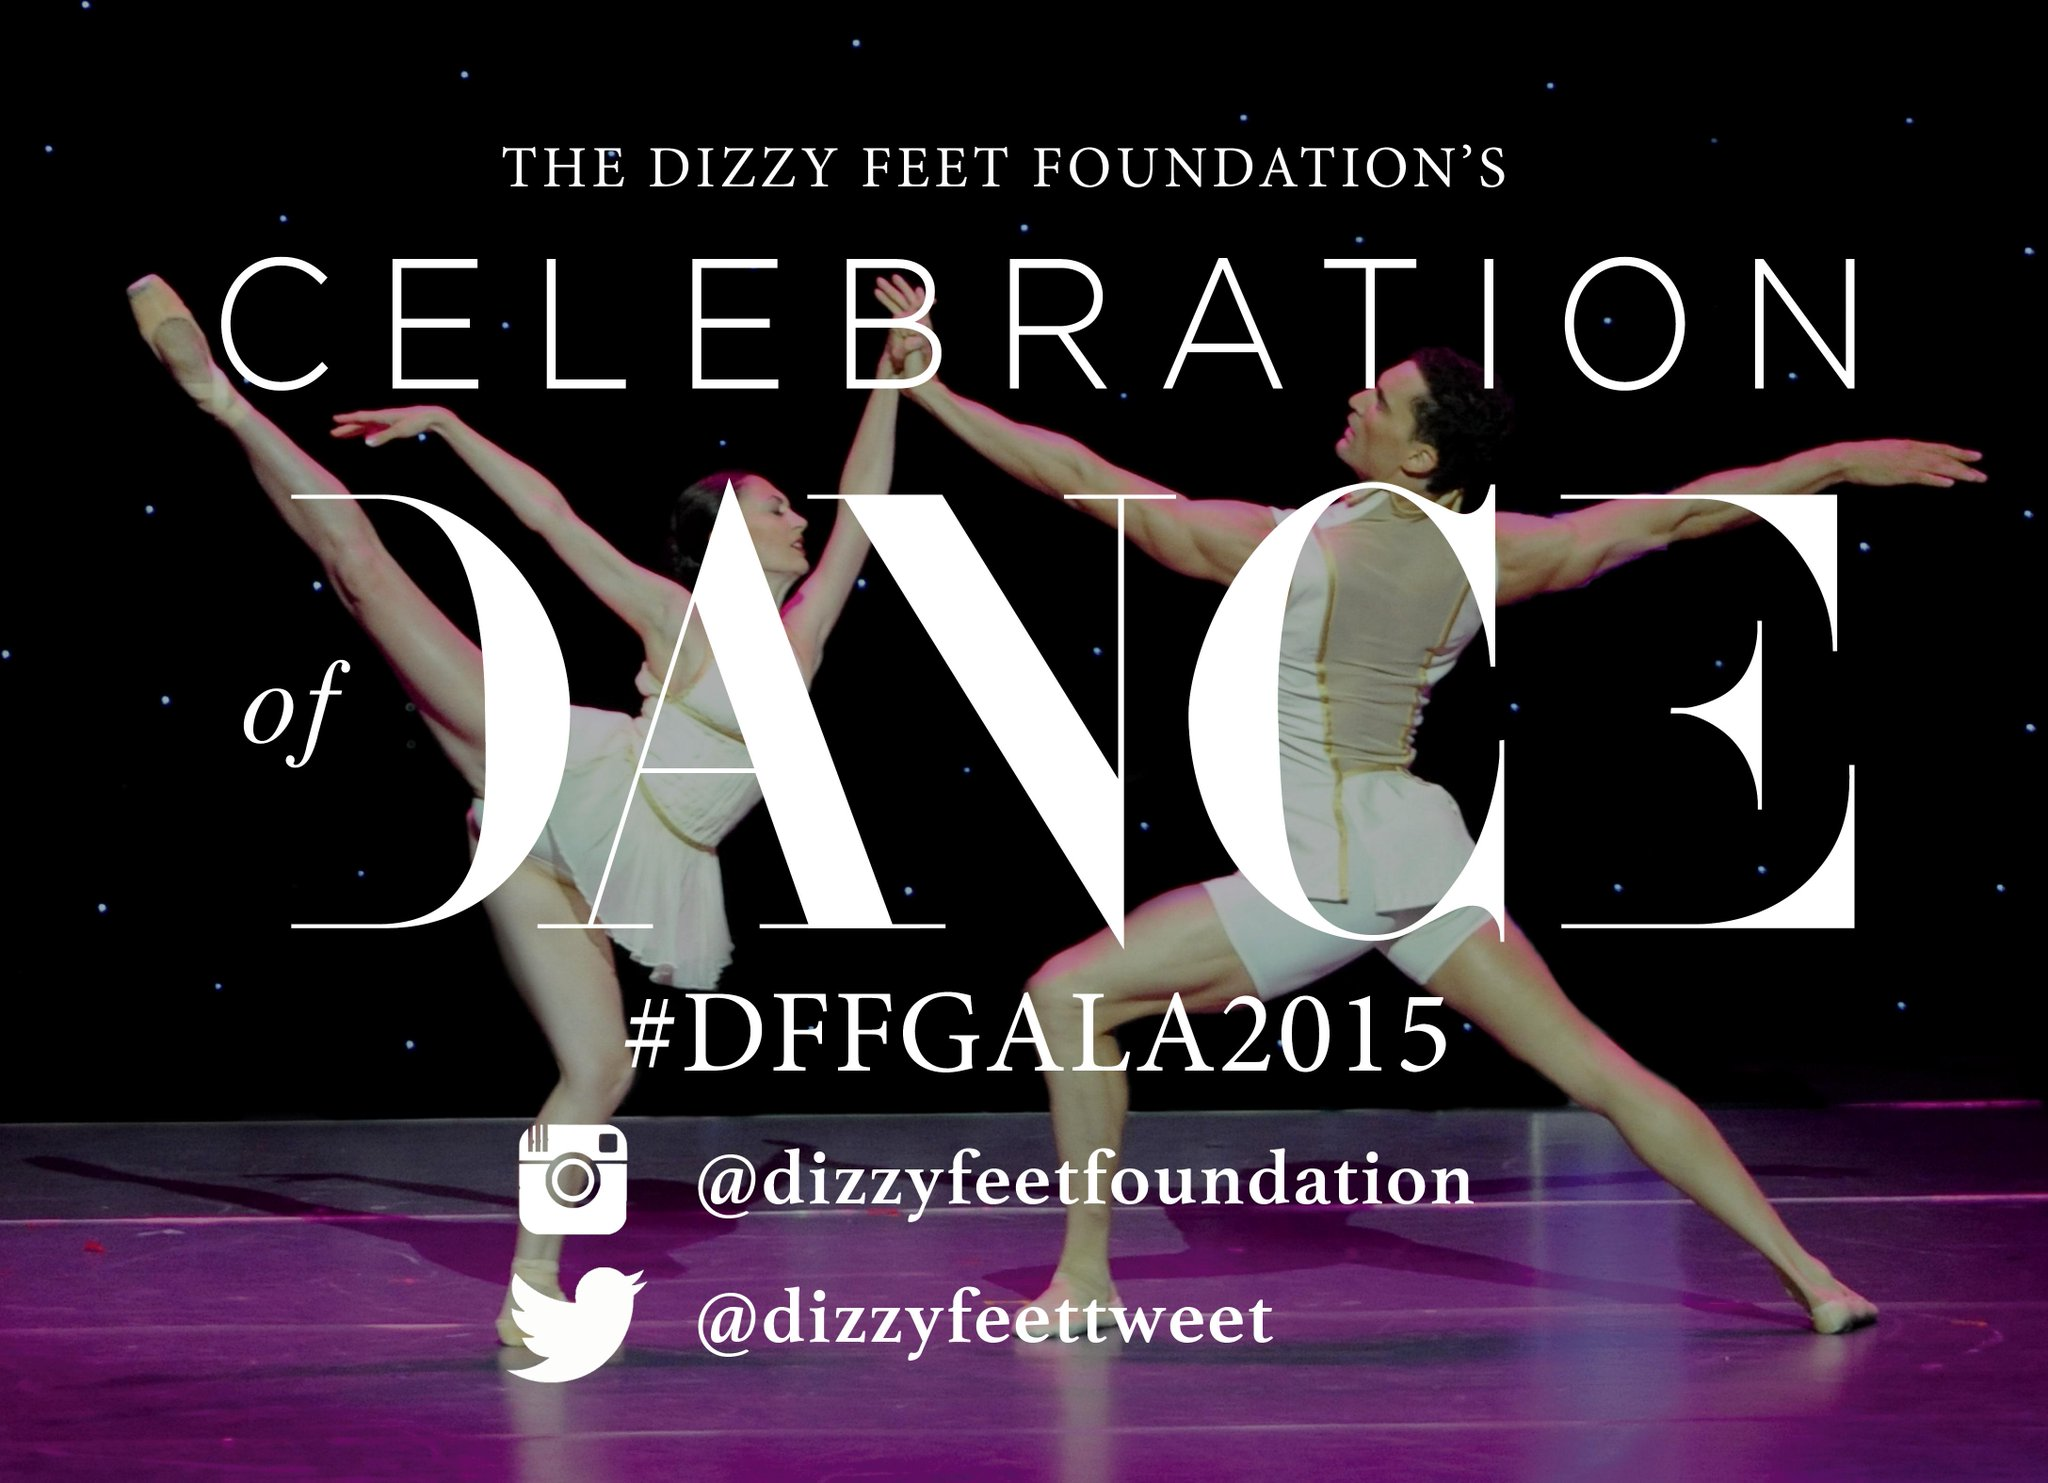 RT @DizzyFeetTweet: Join us TONIGHT for the #DFF gala at @ClubNokia!​ TIX: http://t.co/eDy2paVddp Follow the action online: #DFFgala2015 ht…